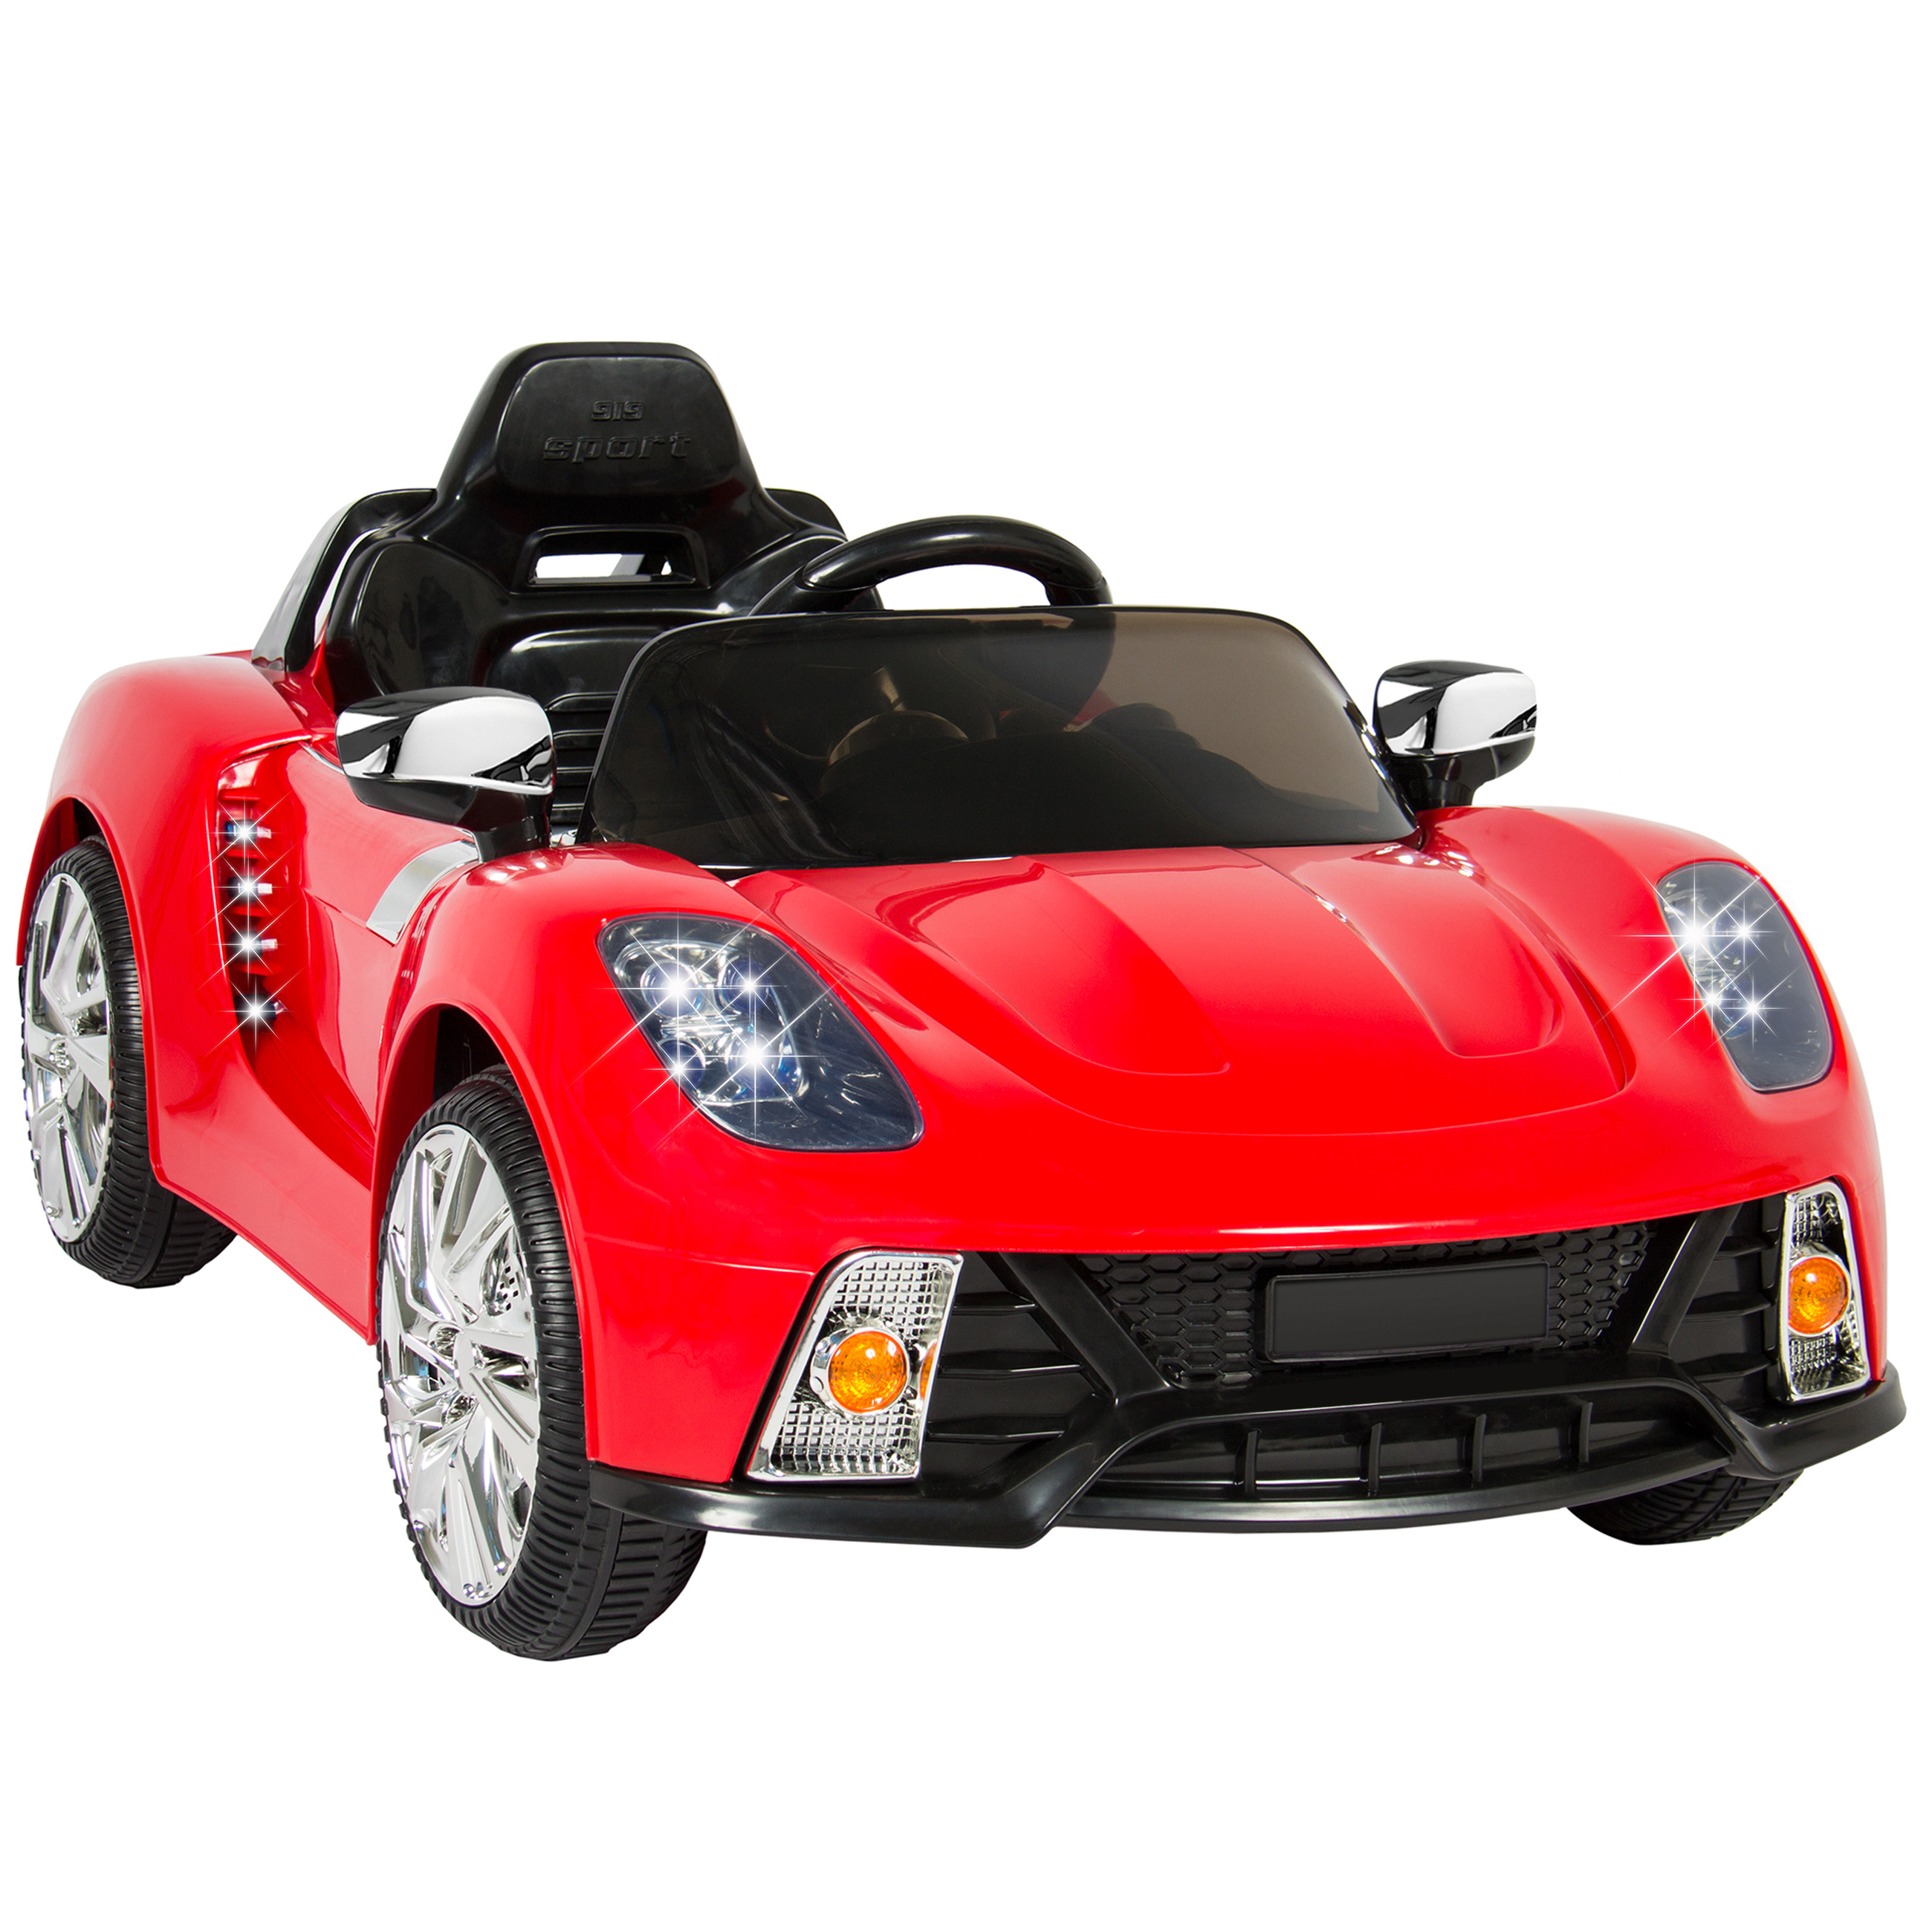 Cheap Electric Cars for Kids Beautiful Best Choice Products 12v Kids Battery Powered Remote Control